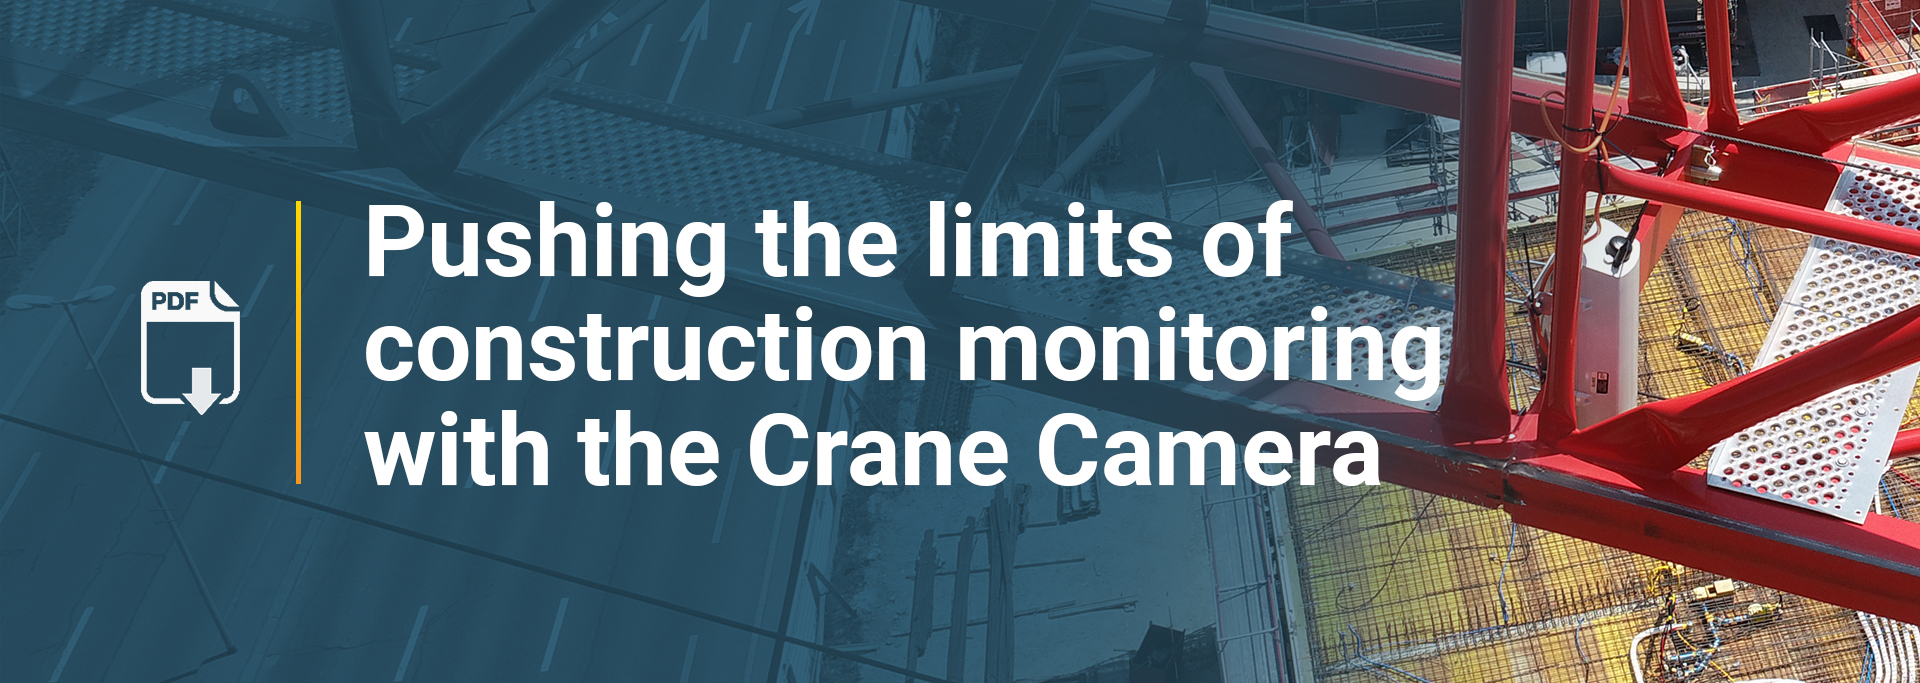 Free ebook: Pushing the limits of construction monitoring with the Crane Camera